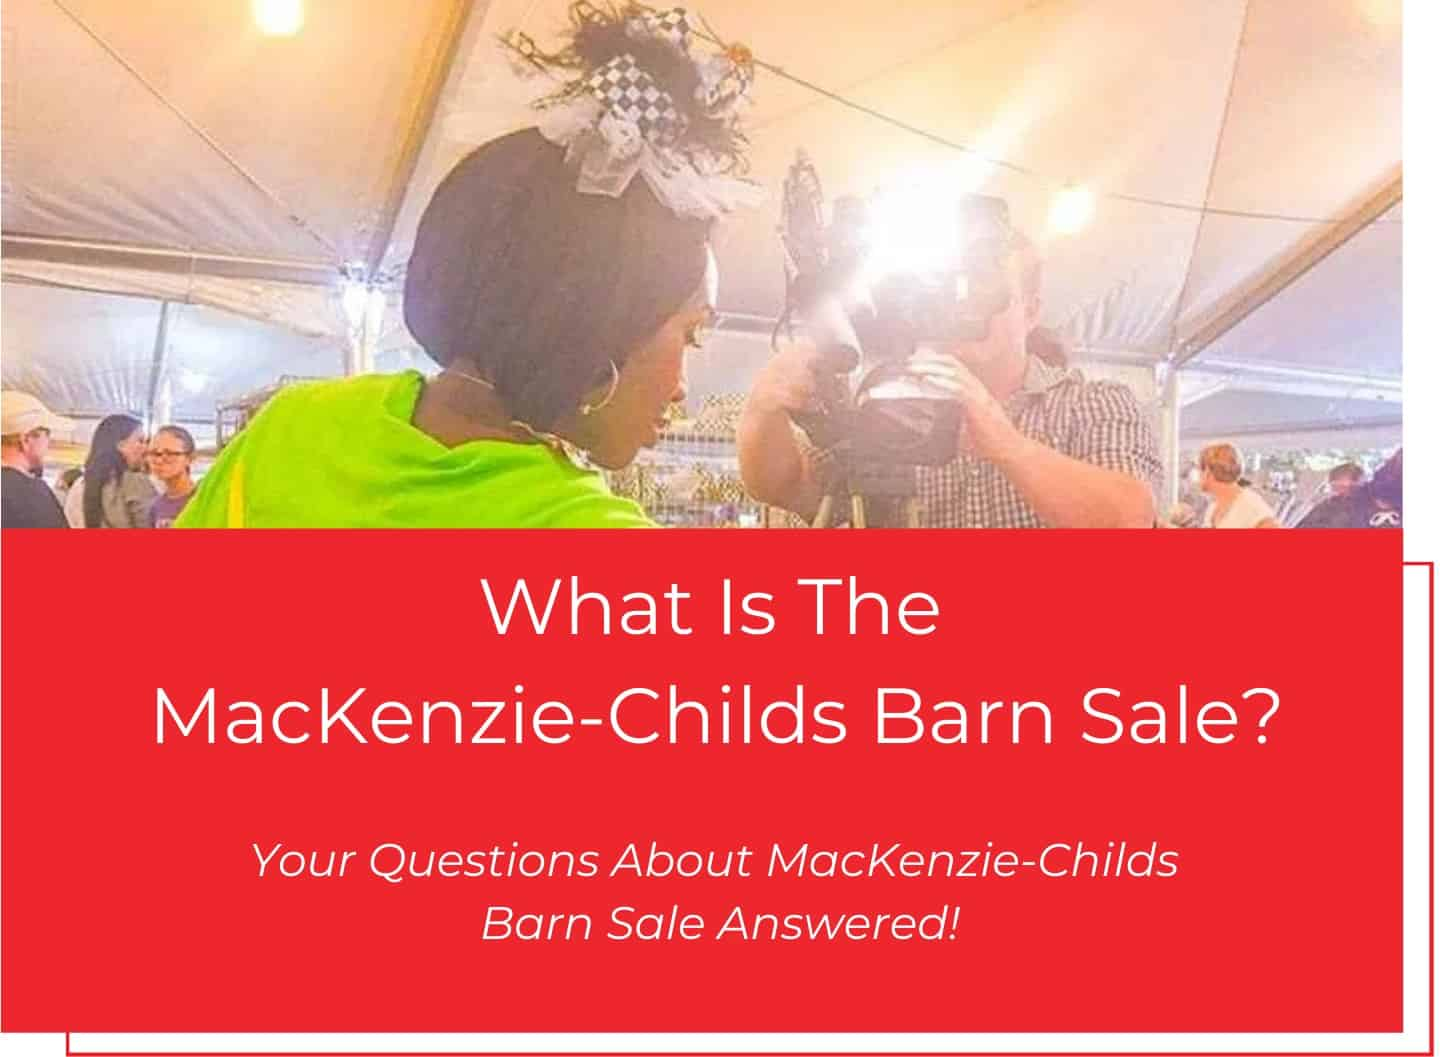 What Is The MacKenzie-Childs Barn Sale?